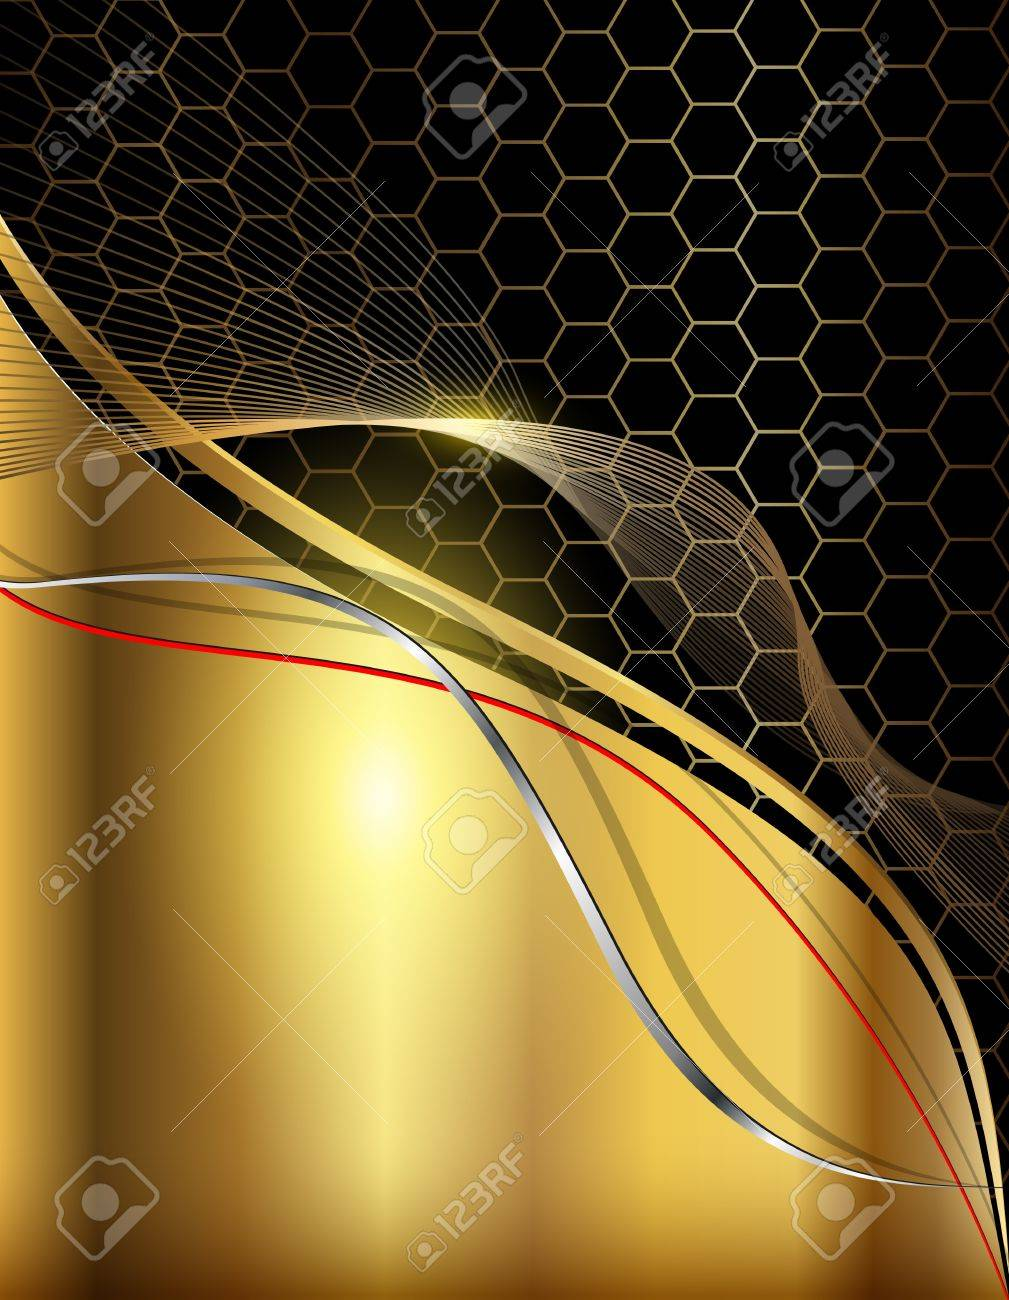 Business abstract background elegant gold. Stock Vector - 18524149